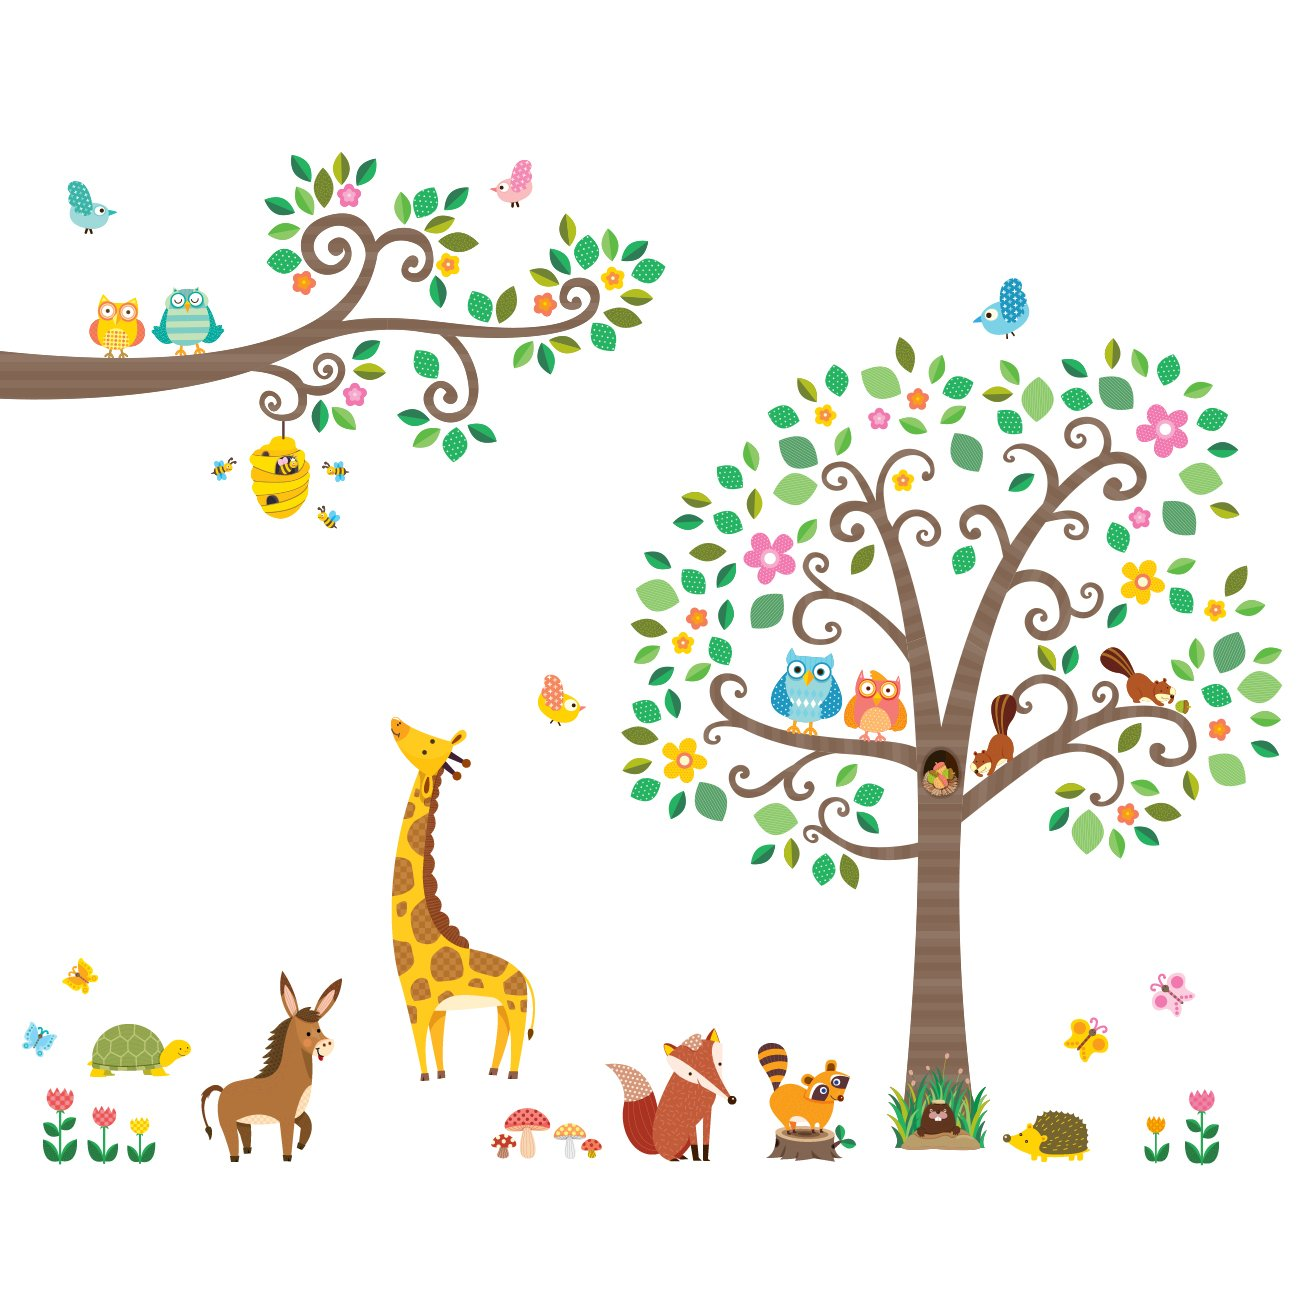 Decowall DM-1502P1512 Large Scroll Tree and Branches with Animals Kids Wall Decals Wall Stickers Peel and Stick Removable Wall Stickers for Kids Nursery Bedroom Living Room